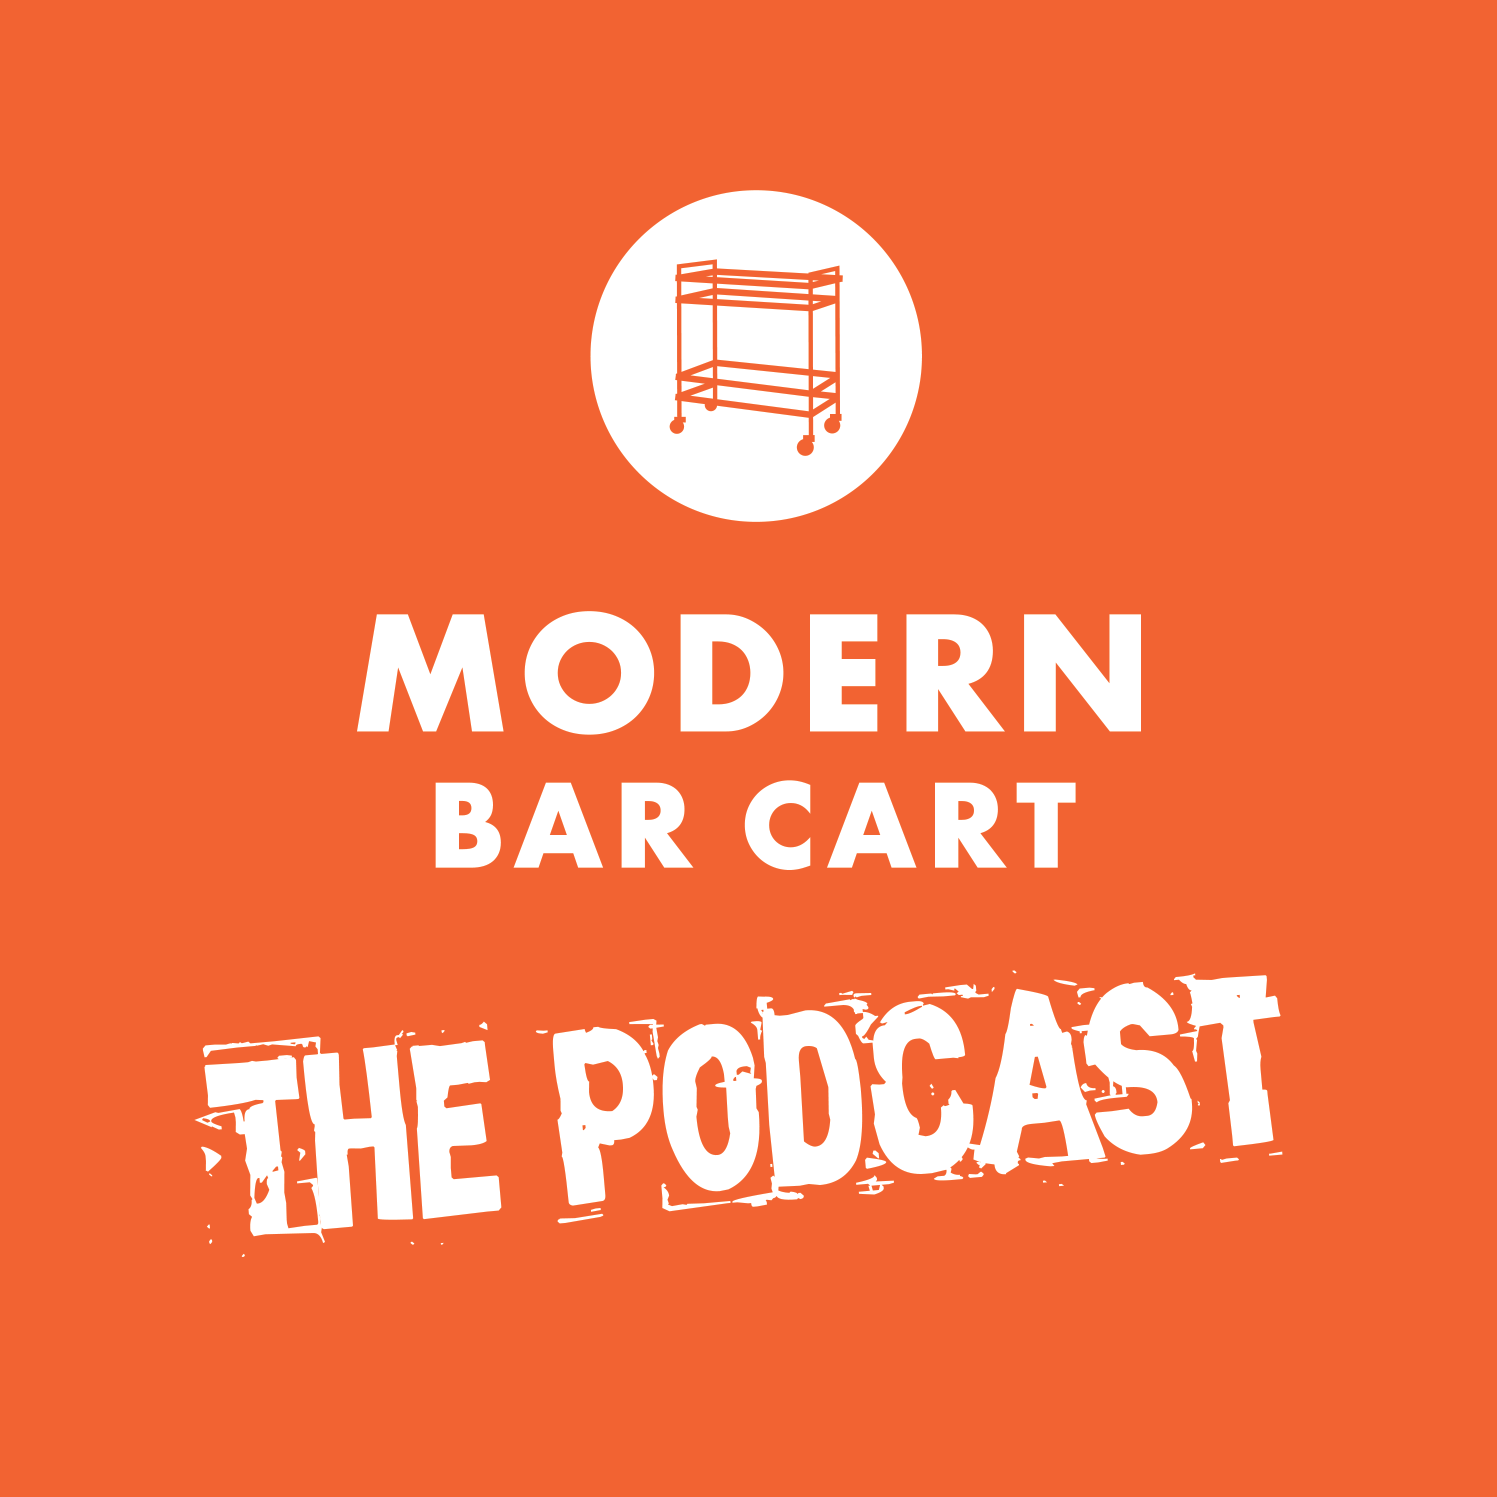 Dennis appeared on Modern Bar Cart to talk about egg cocktails, the dry shake, and sharing a whiskey sour with Walt Whitman. Click the image to listen to the podcast or read a summary.